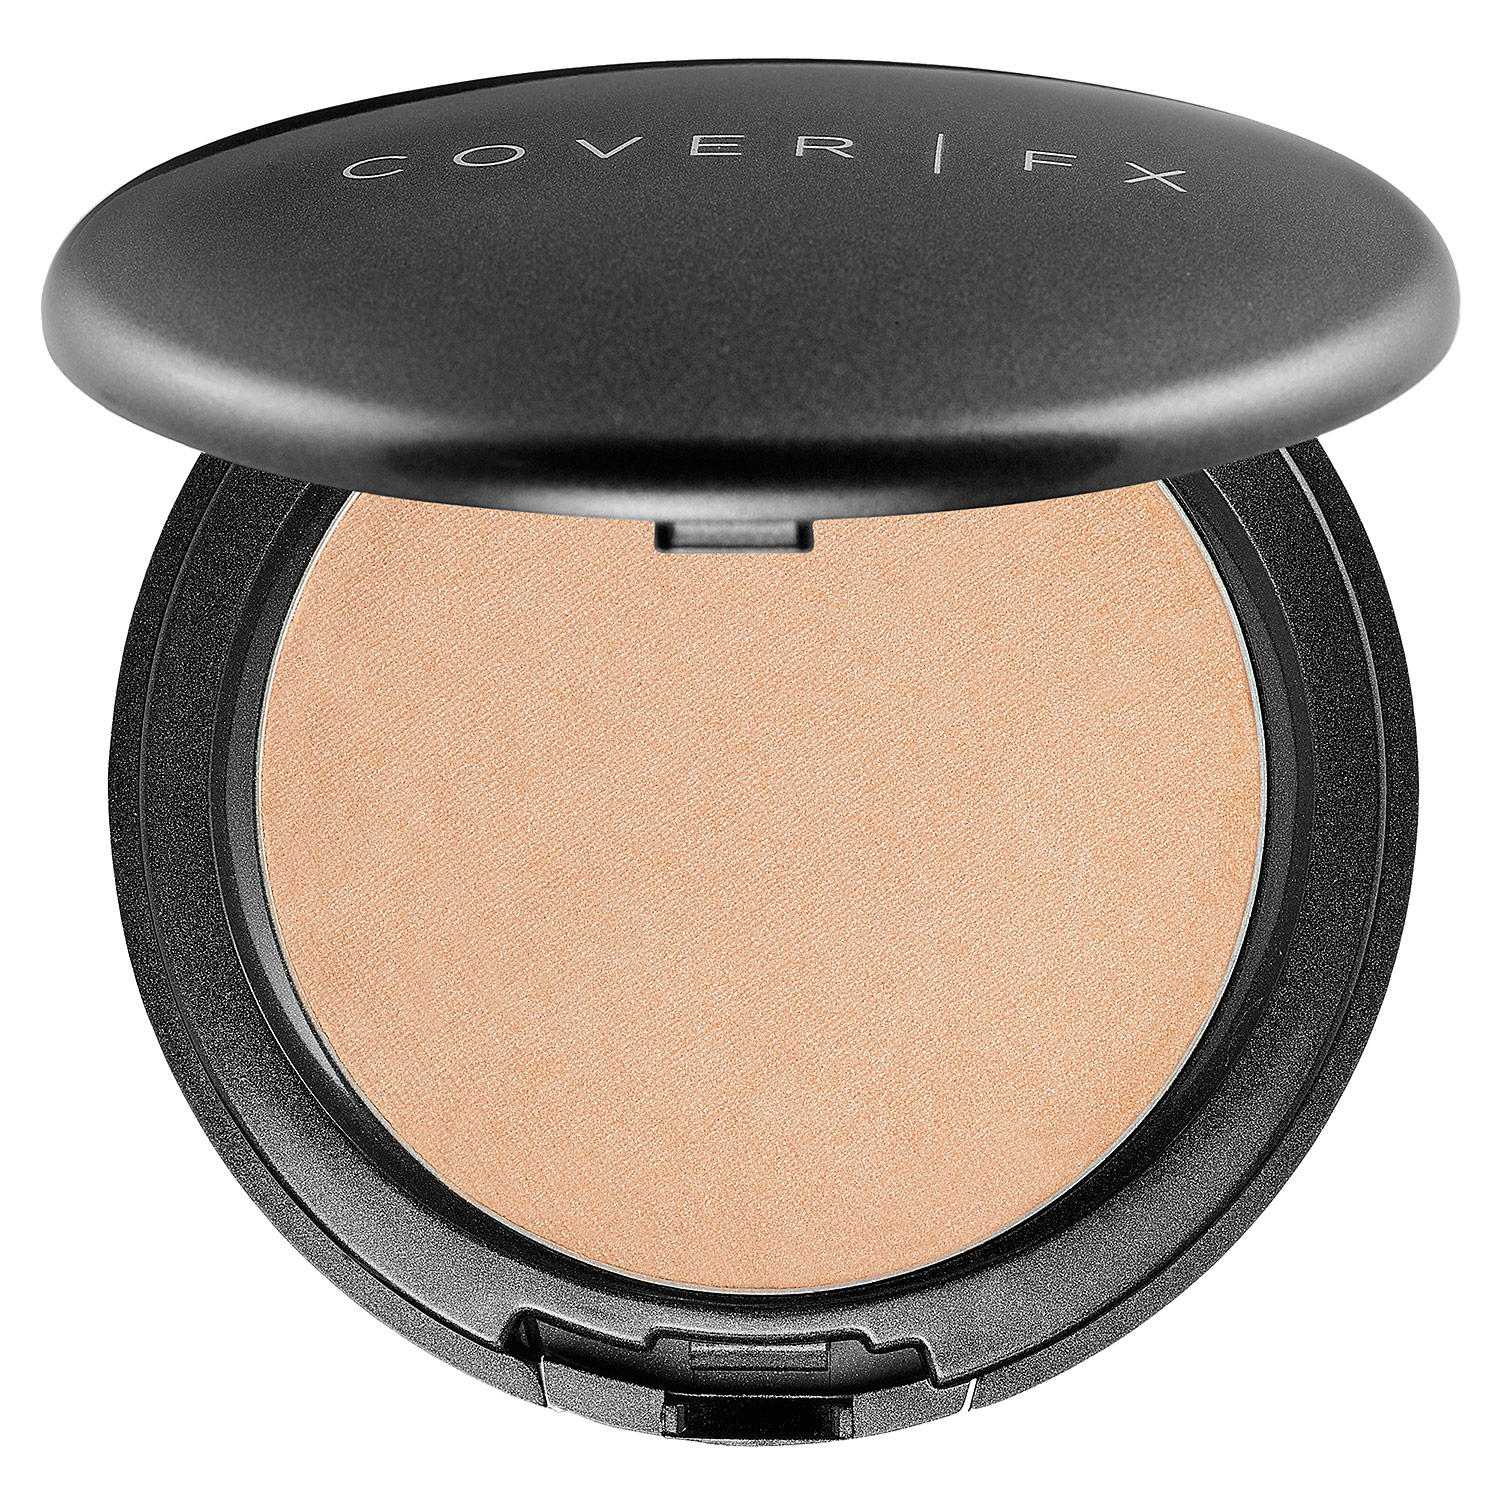 Cover FX Illuminator Moonlight